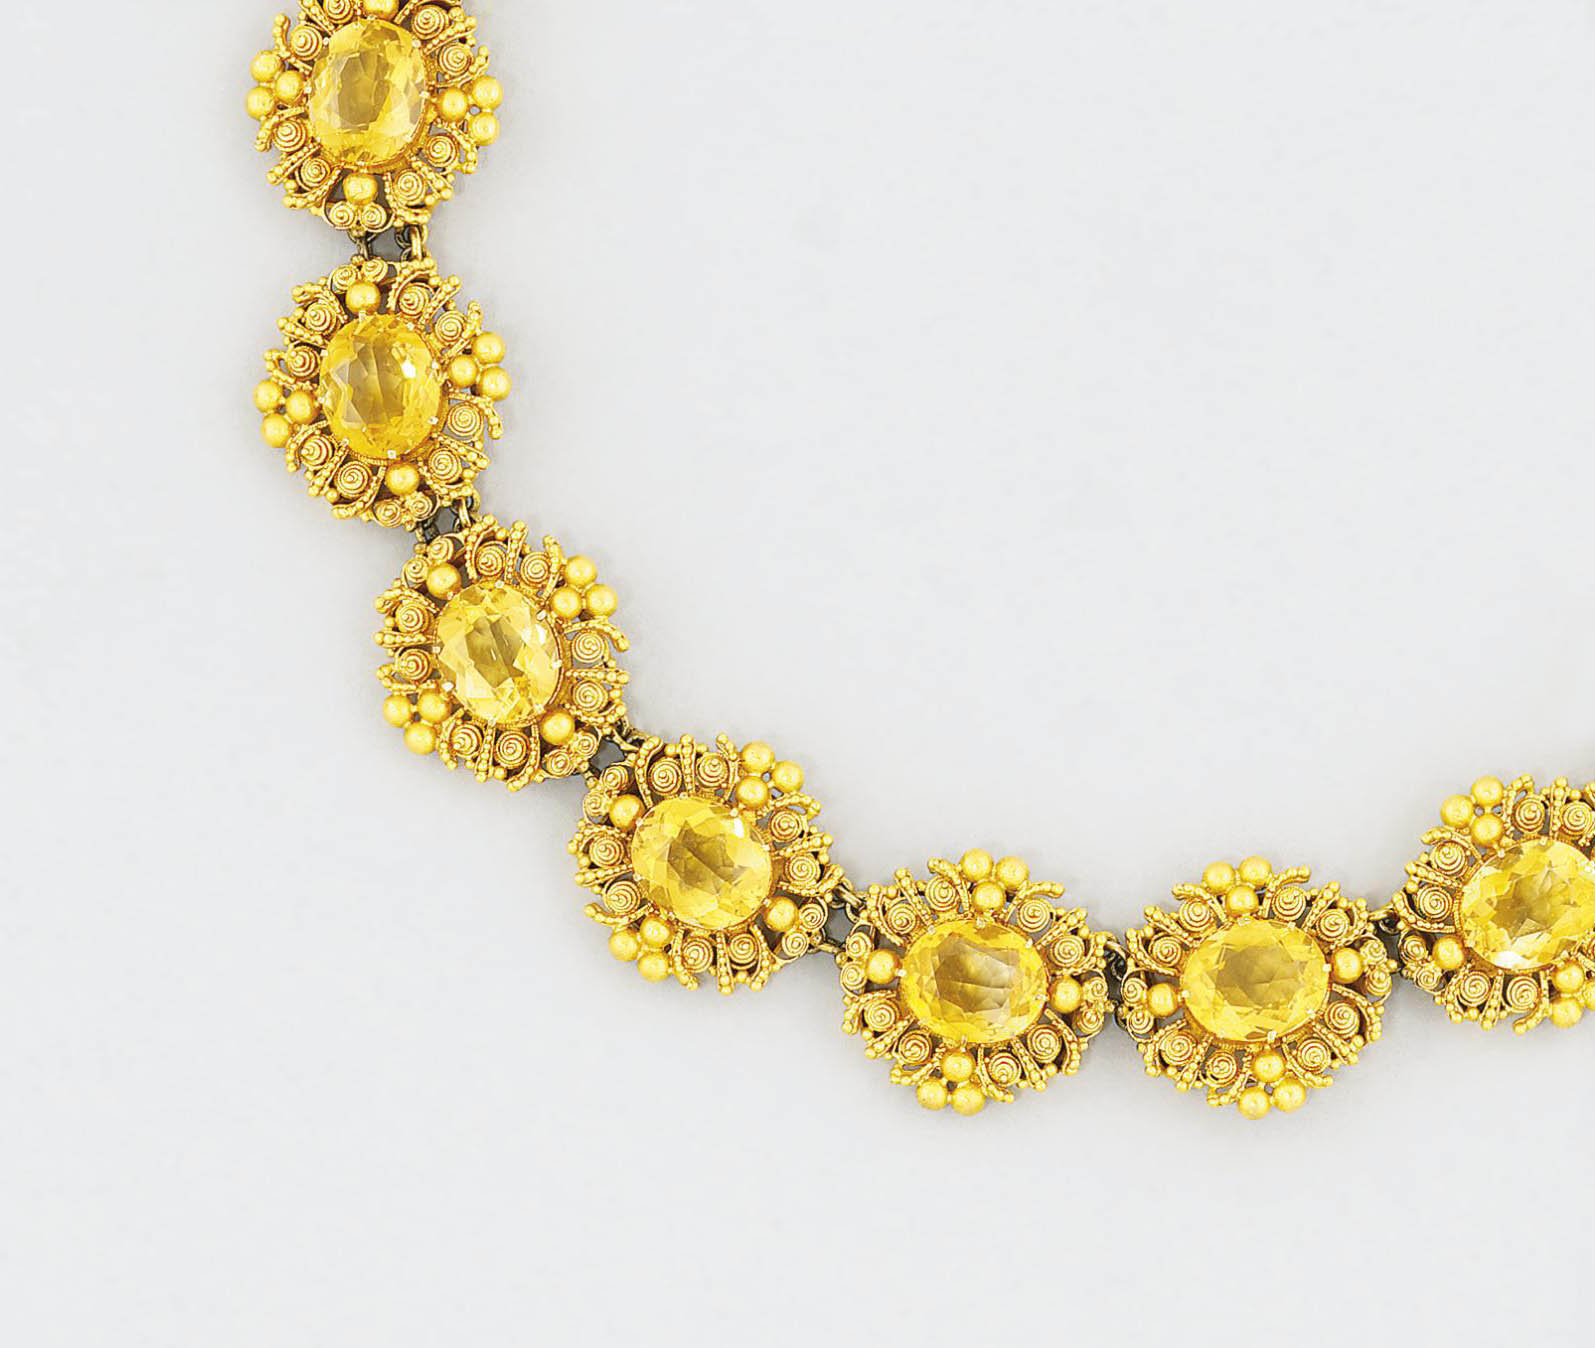 A citrine and gold necklace